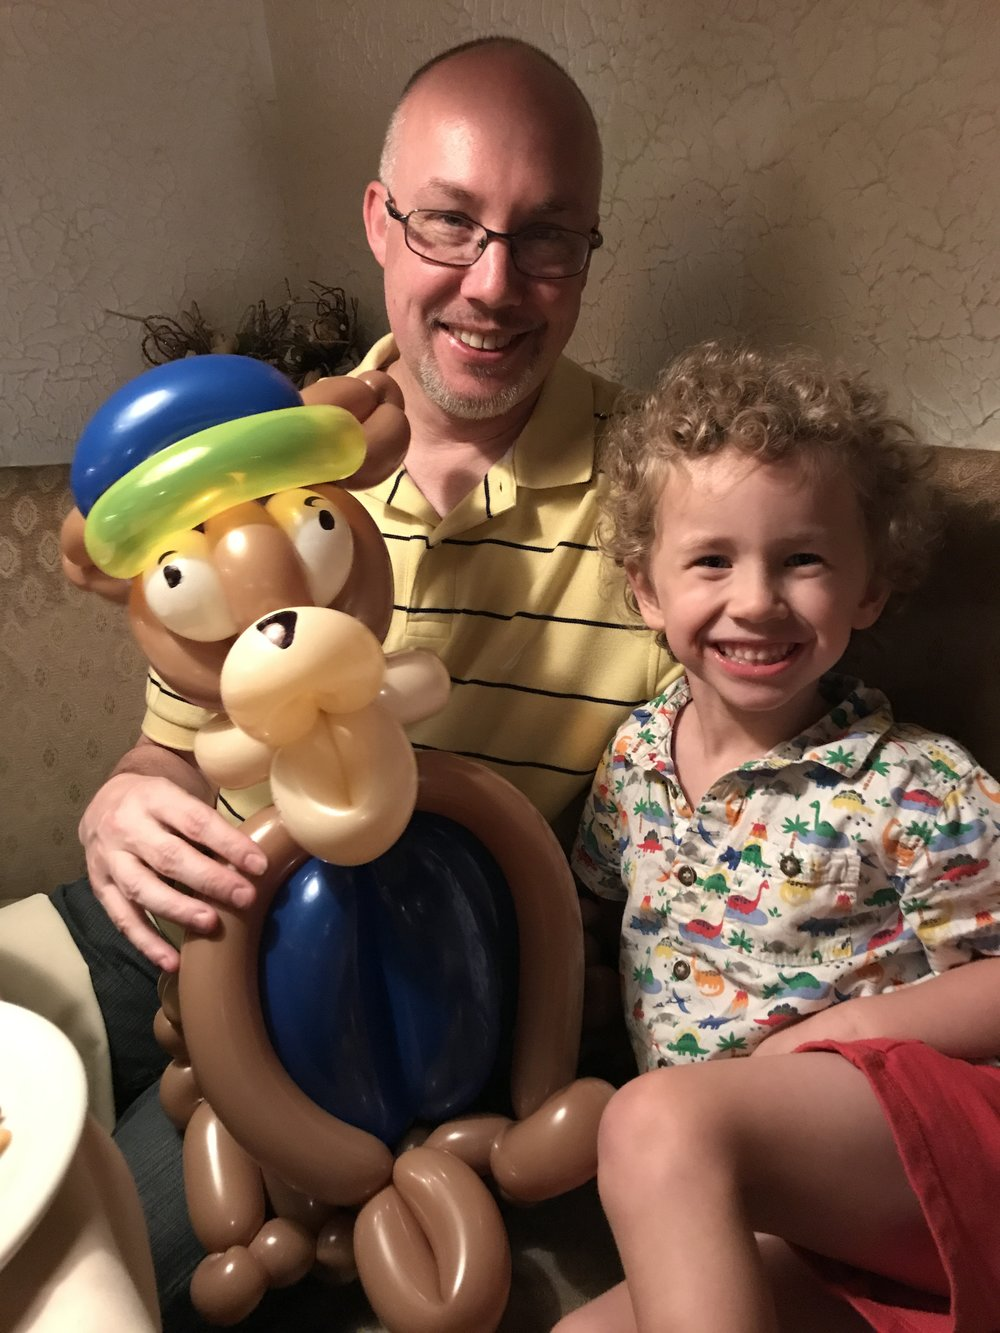 Tucker, Uncle Shawn, and balloon animal Chase from Paw Patrol